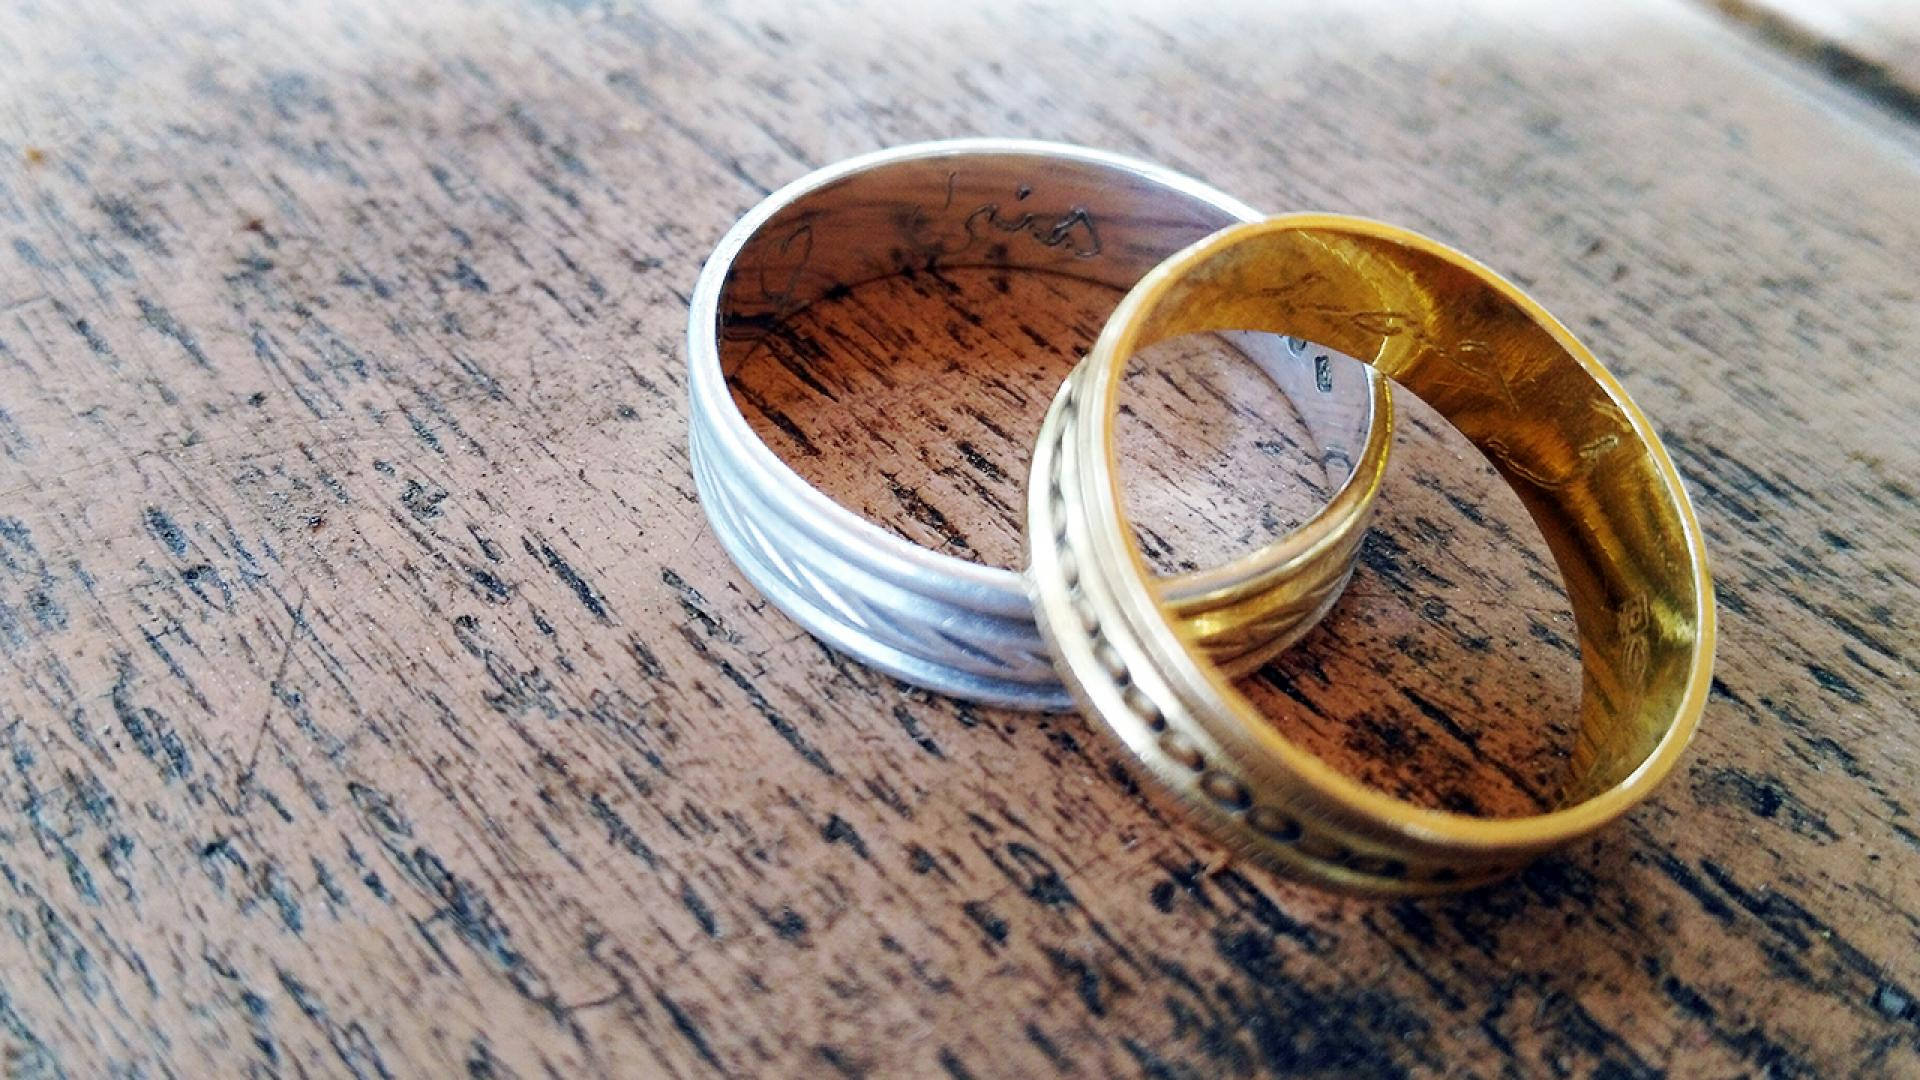 Monica Iken is now offering a $500 reward for the safe return of the rings.